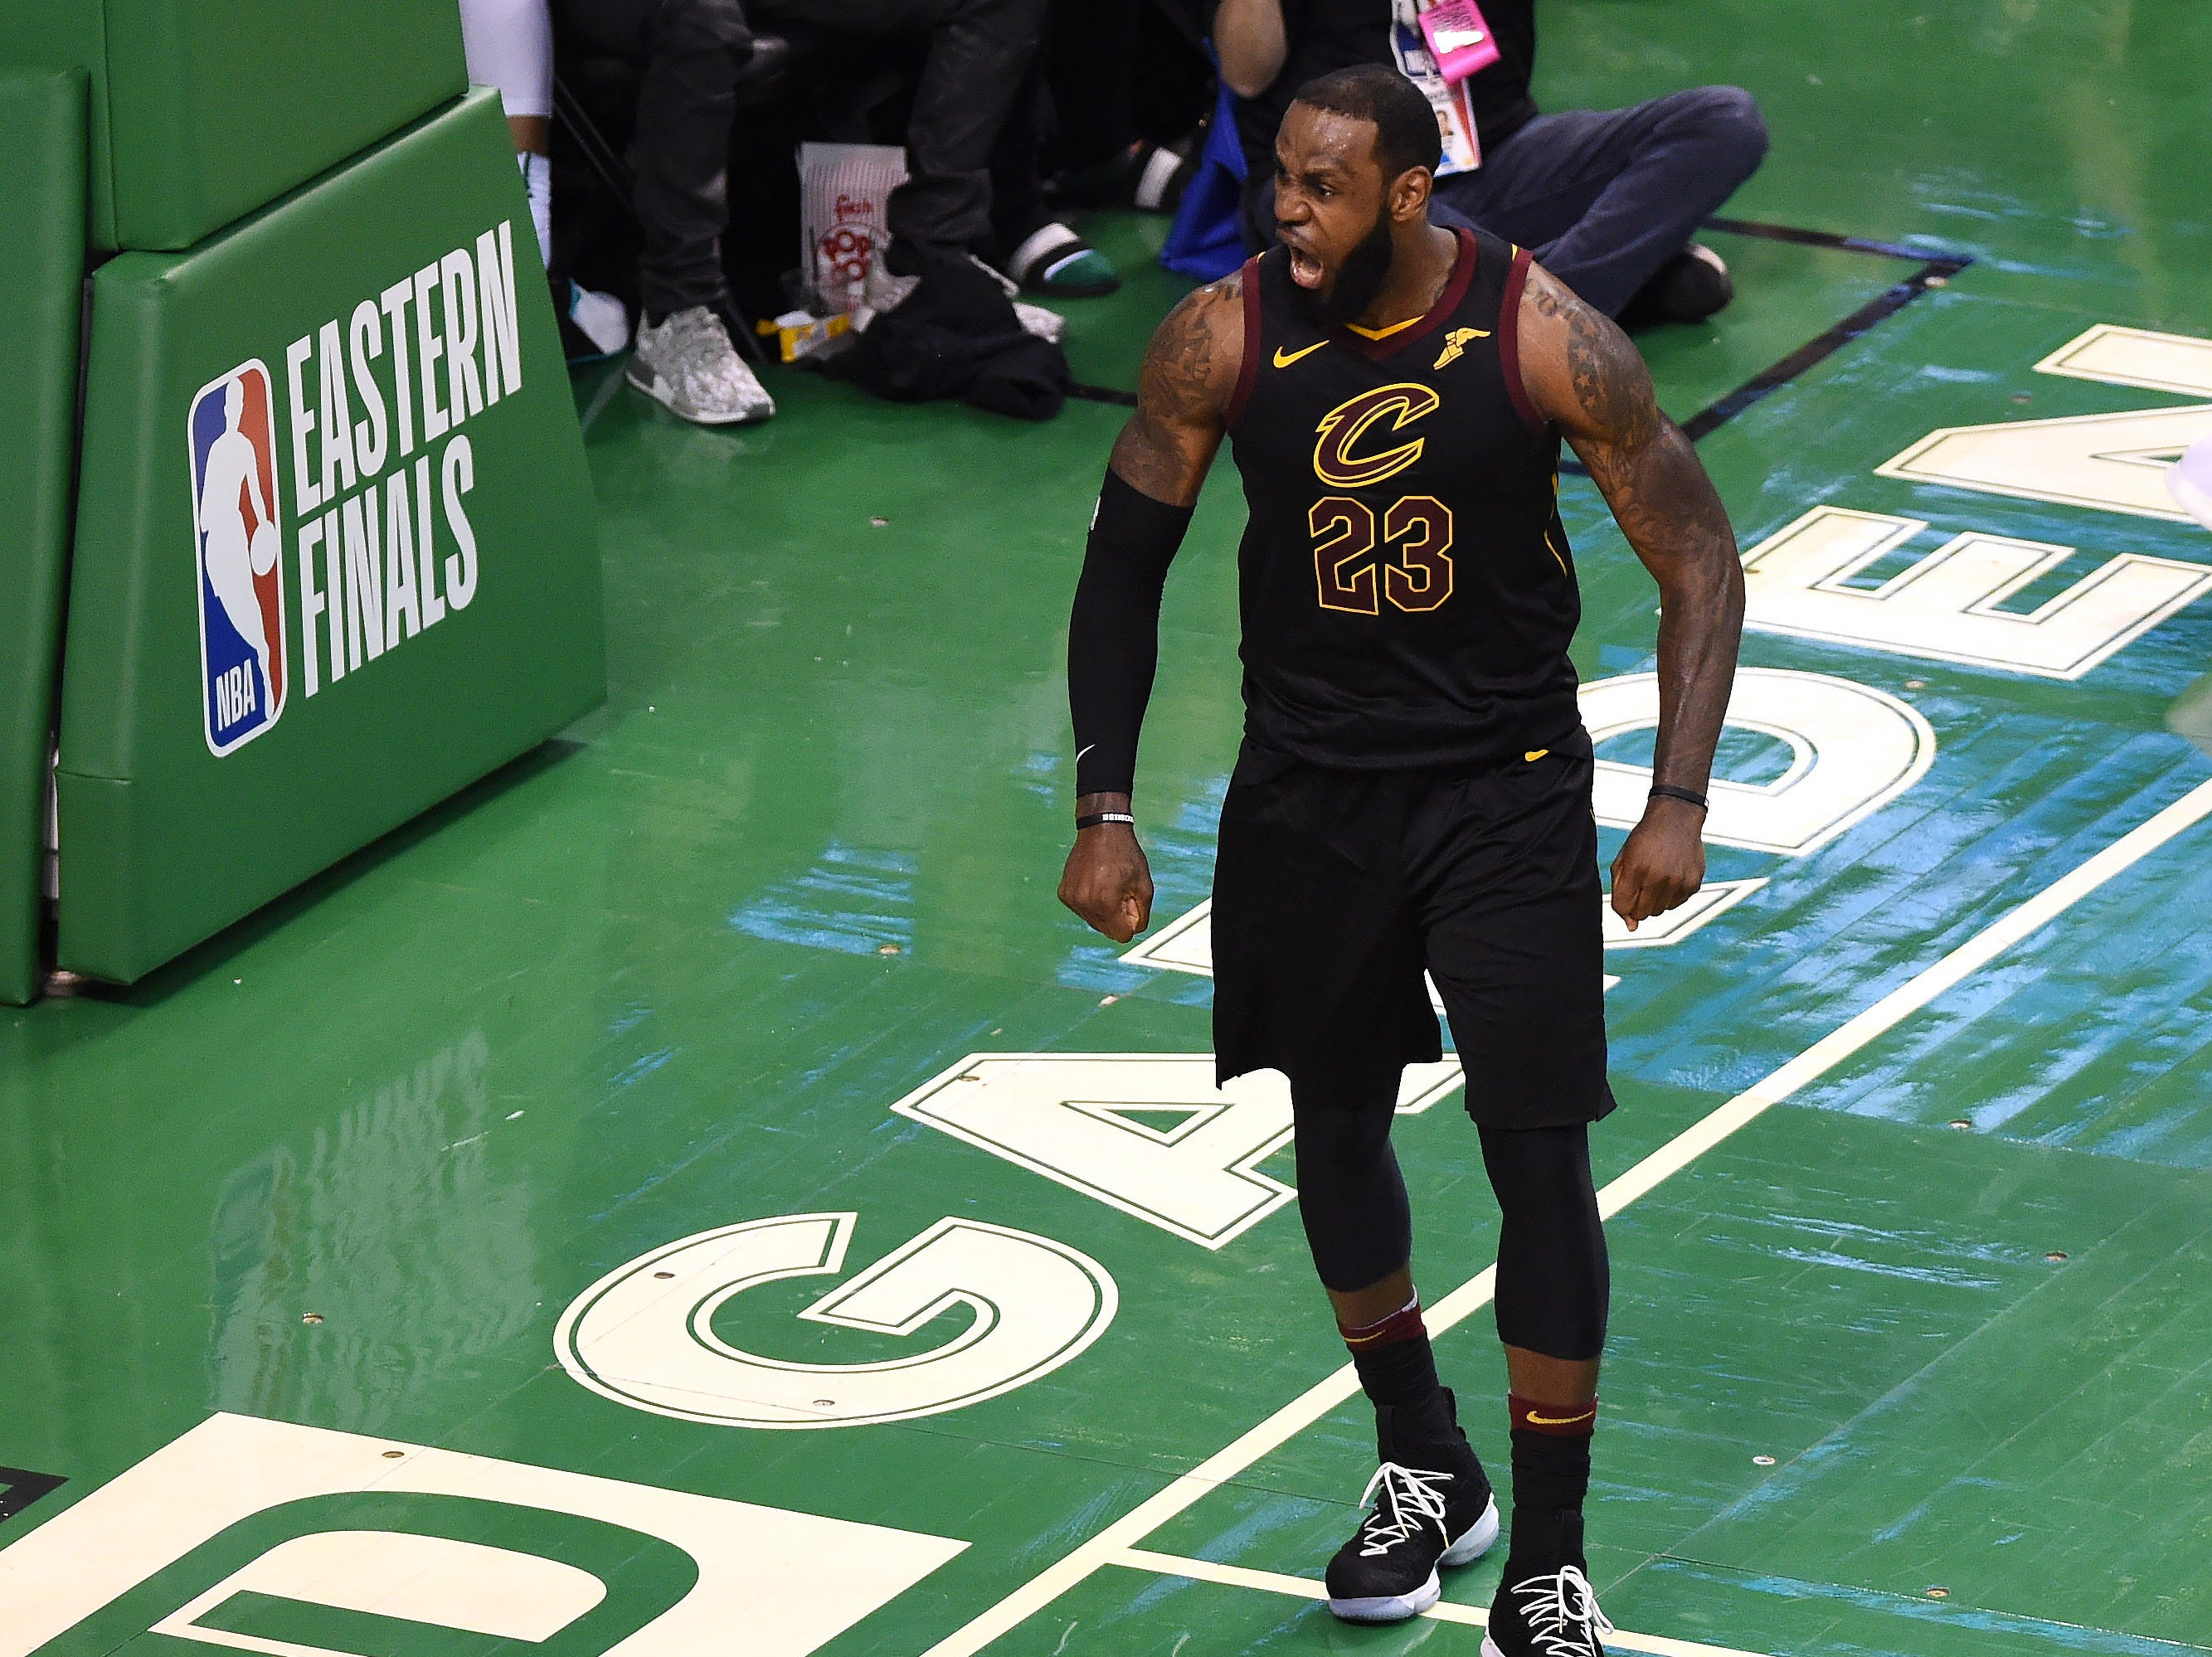 May 27: Cleveland Cavaliers forward LeBron James celebrates after making a basket during the second half in Game 7 of the Eastern conference finals against the Boston Celtics at TD Garden.